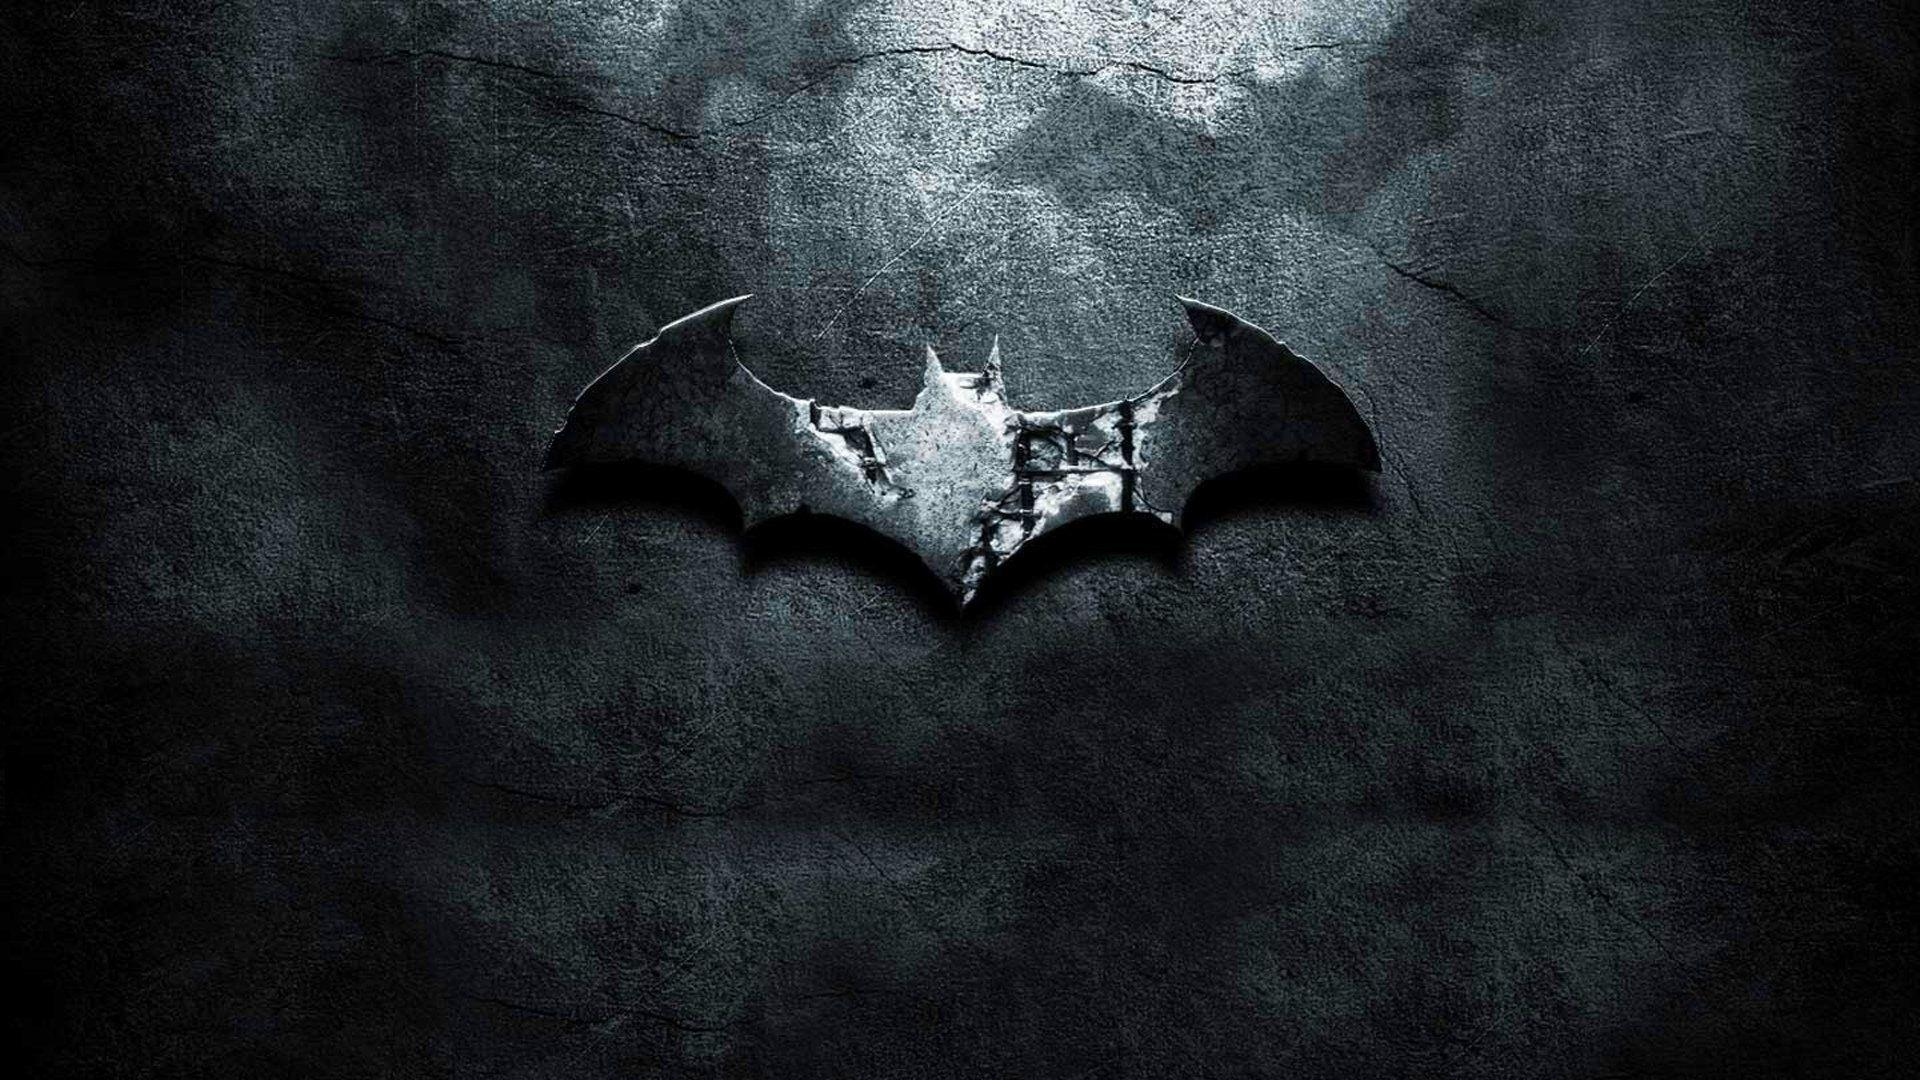 Batman Logo Batmans Wallpapers For Desktop , Free Widescreen HD ...